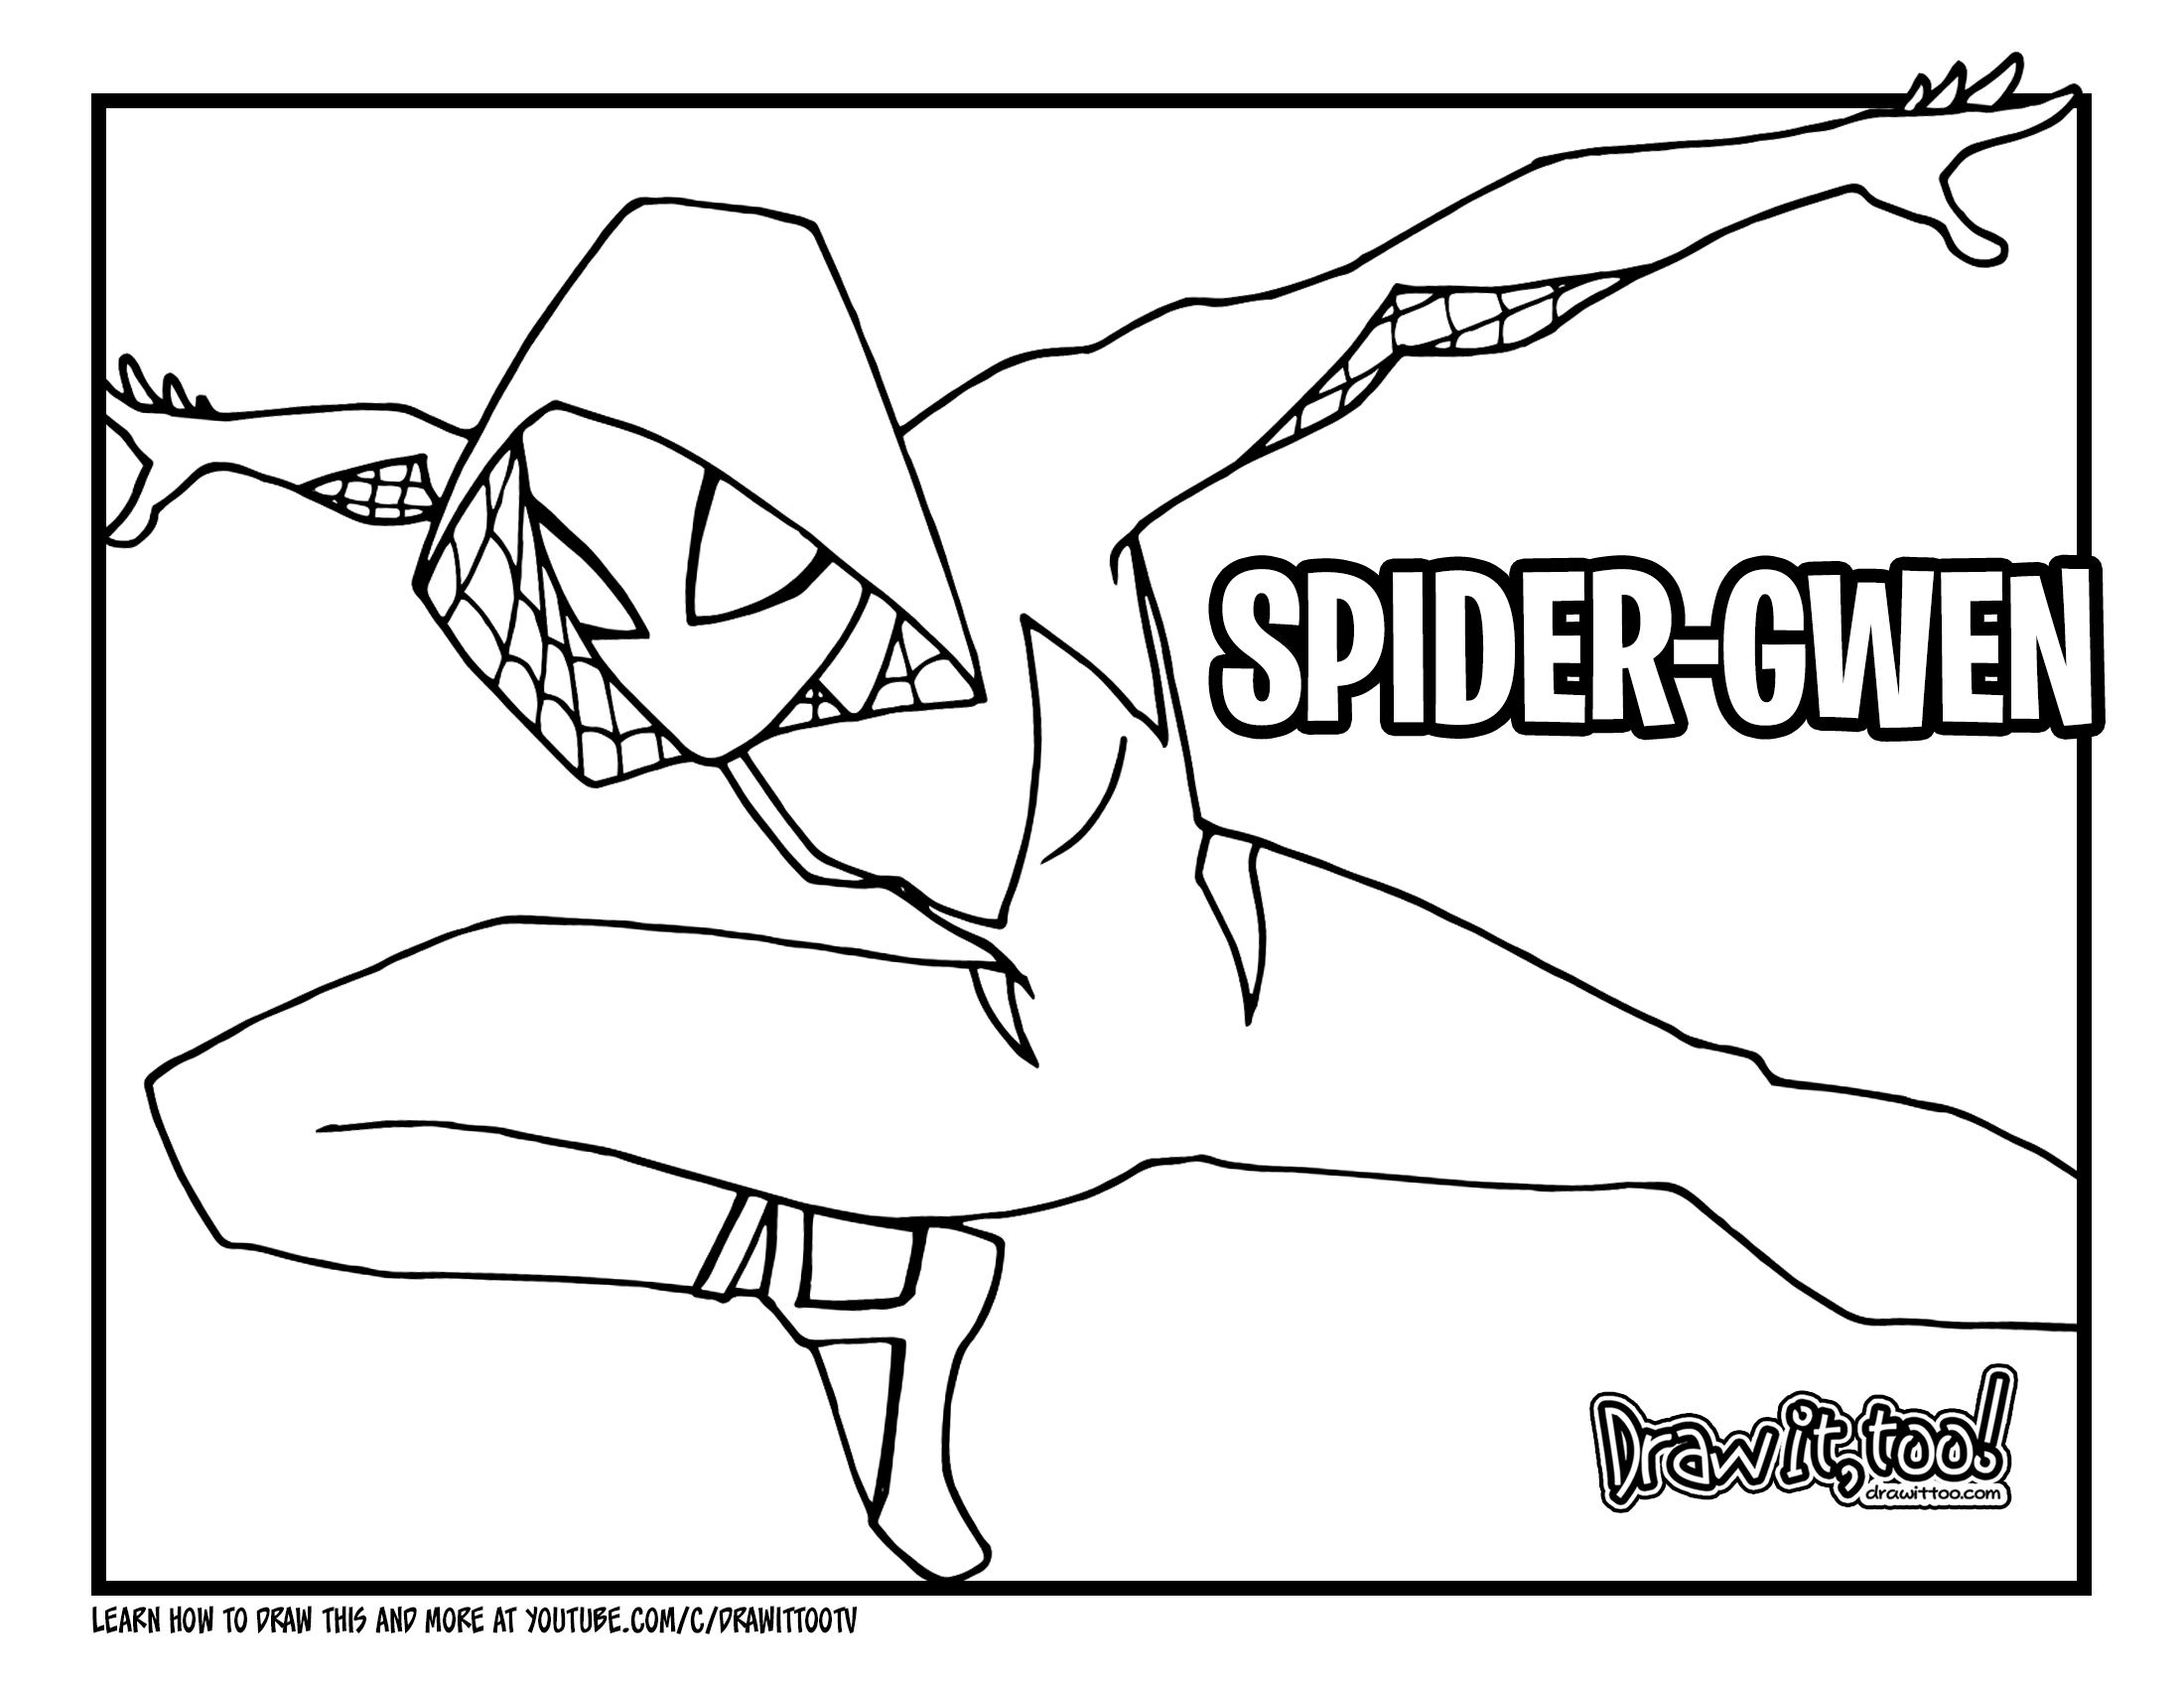 Spider Man Into The Spider Verse Is Just Around The Corner One Of The Cooler New Spider People To Come Out Of T Spider Gwen Spiderman Coloring Gwen Spiderman